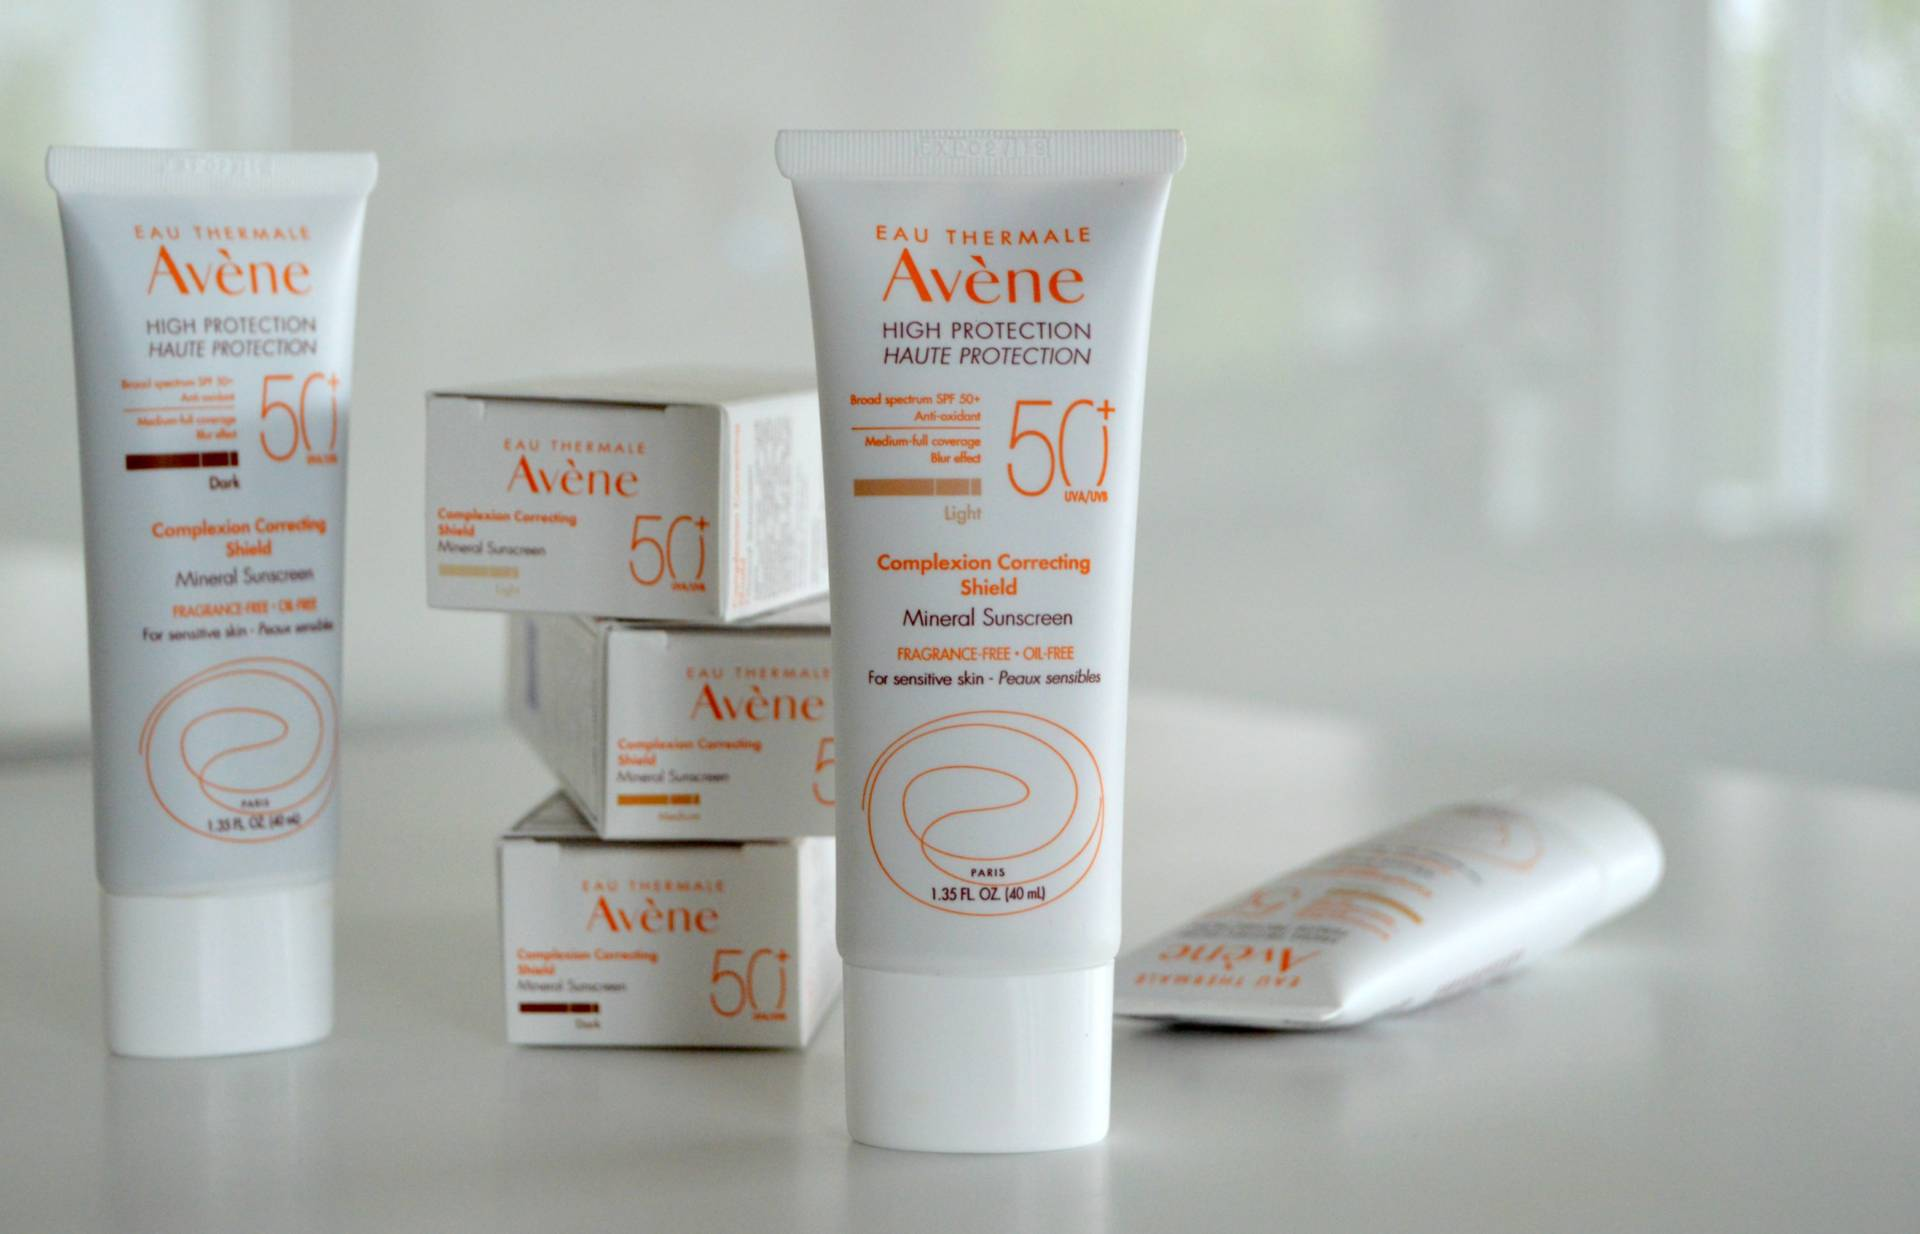 Kem chống nắng Avene Complexion Correcting Shield (Face)